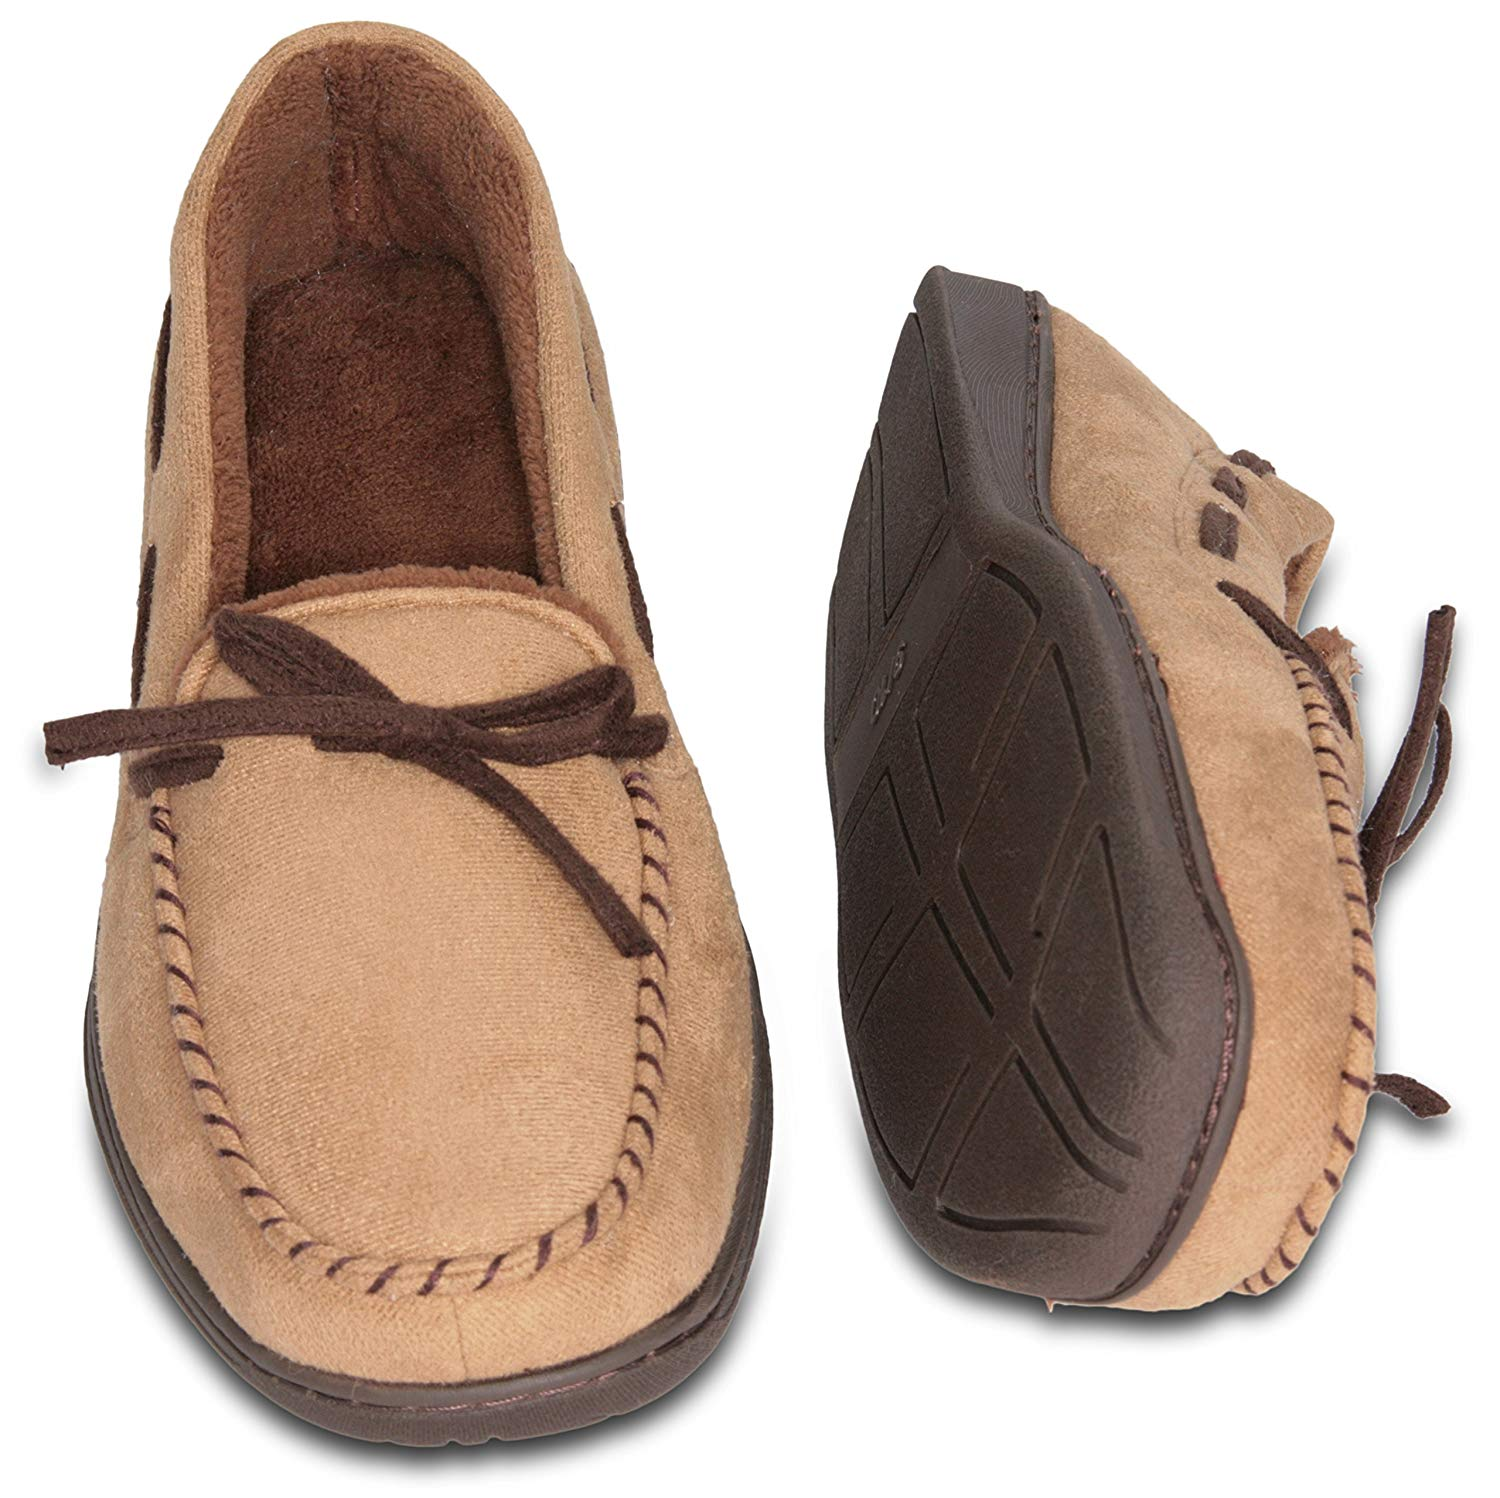 Deluxe Comfort Mens Faux Suede Memory Foam Dress Slipper, Size 9-10 - Warm And Stylish Tartan Plaid Fleece Lining - Durable Non-Marking Ruber Sole - Soft Faux Suede Outer - Mens Slippers, Beige